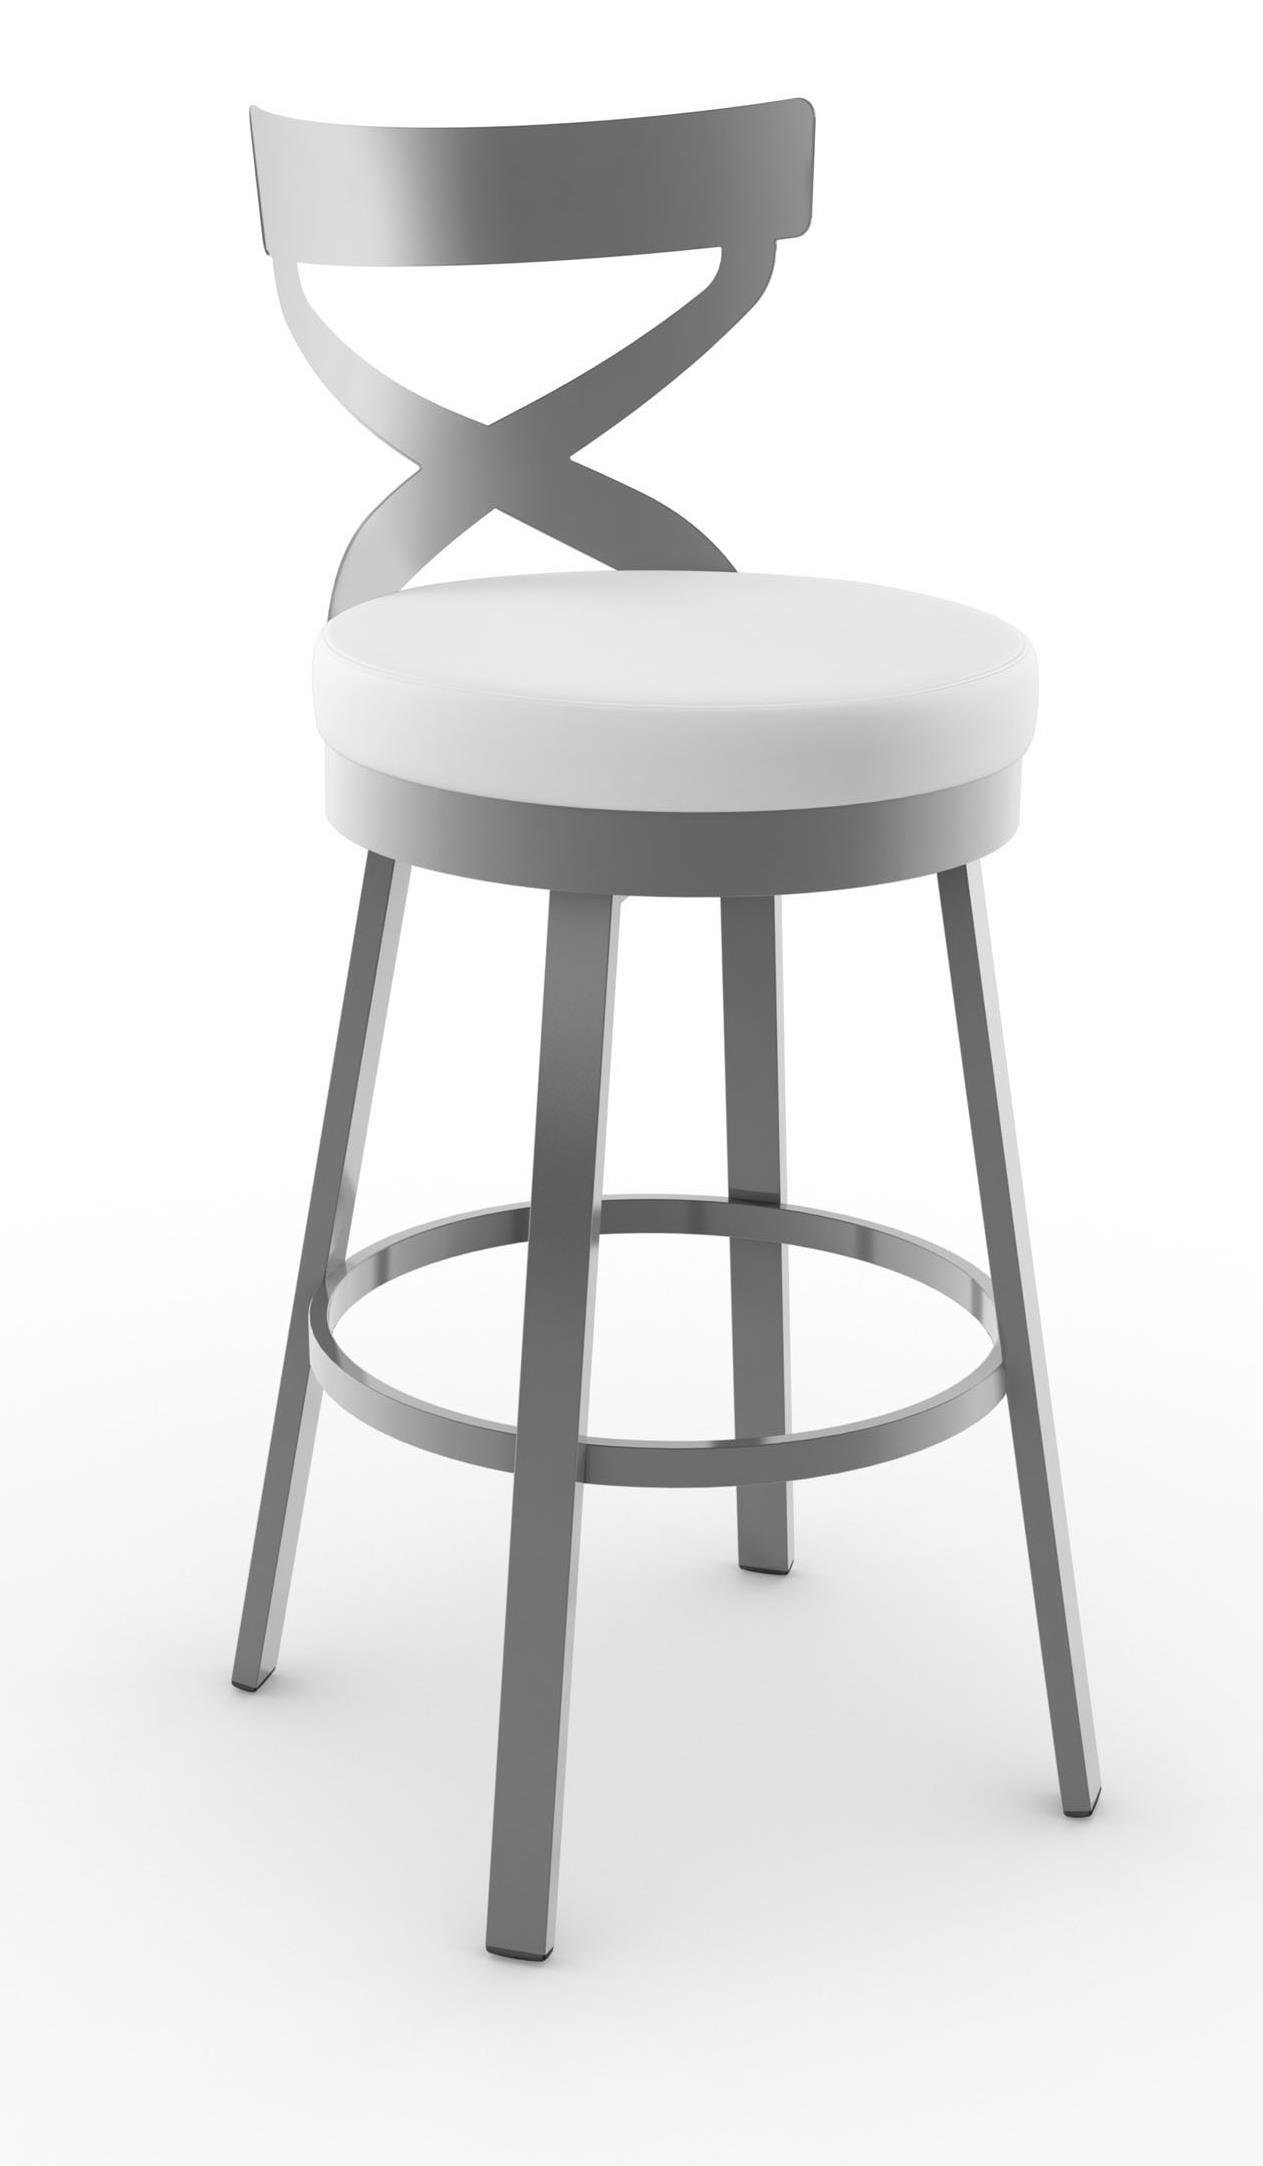 Amisco Stools Lincoln Swivel Stool with Padded Seat  : products2Famisco2Fcolor2Fstools41478 26 b0 from www.dinettedepot.com size 1263 x 2166 jpeg 80kB